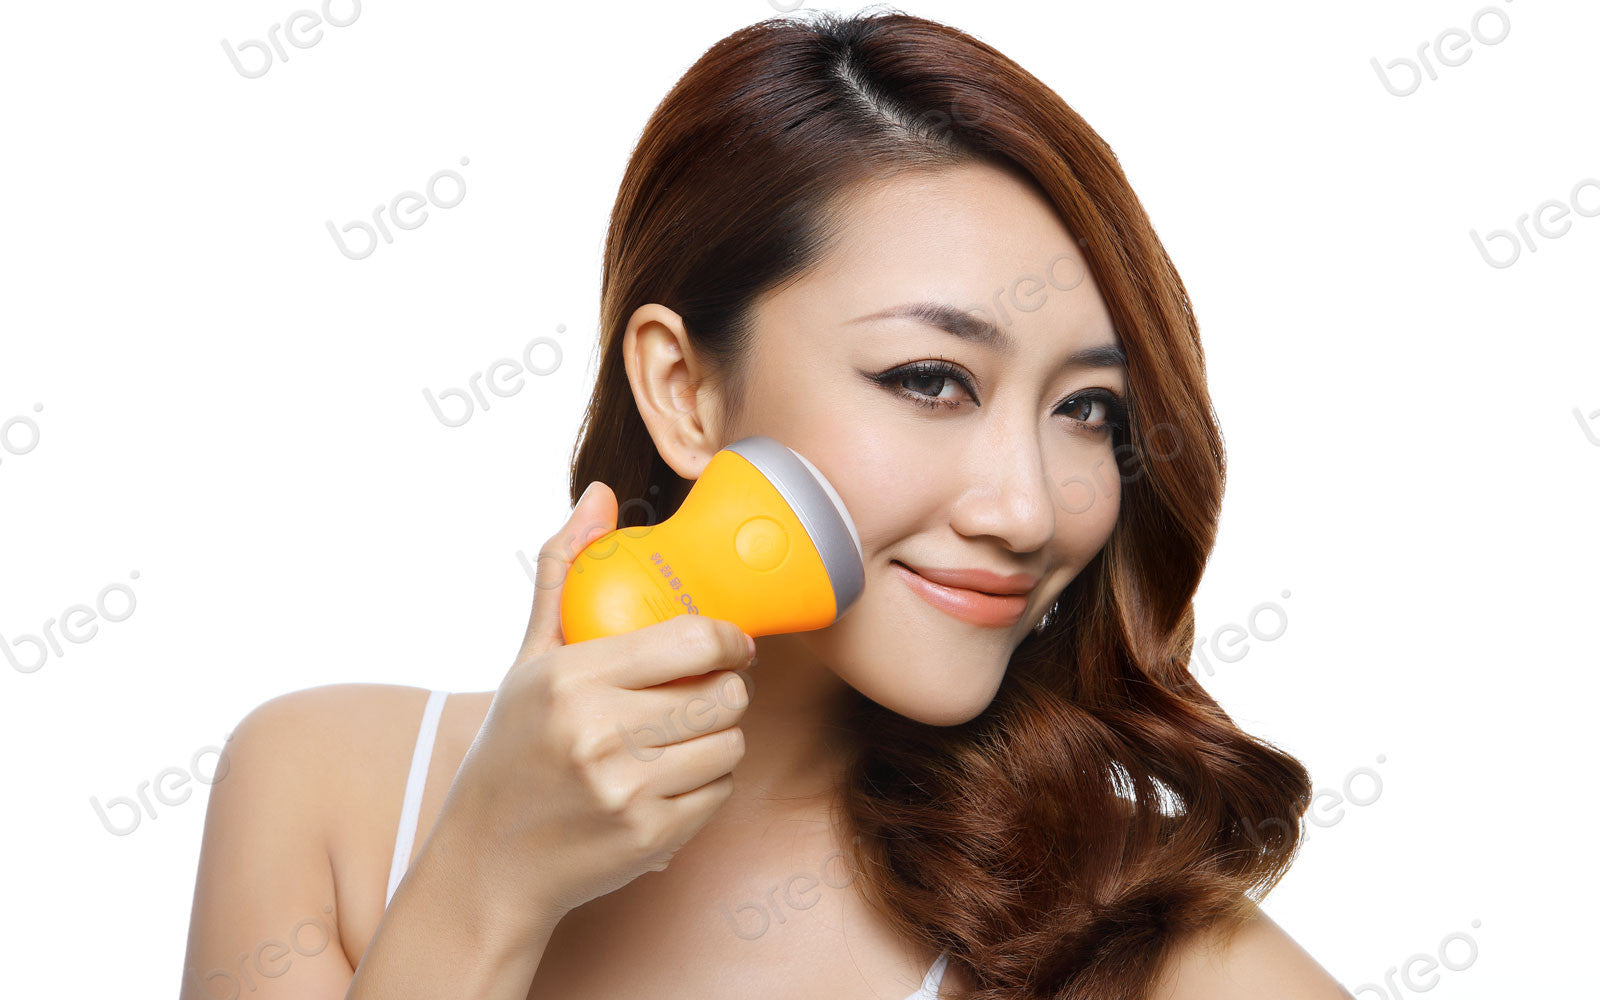 Breo Mini319 Body Massager Set - Breo-USA - 6